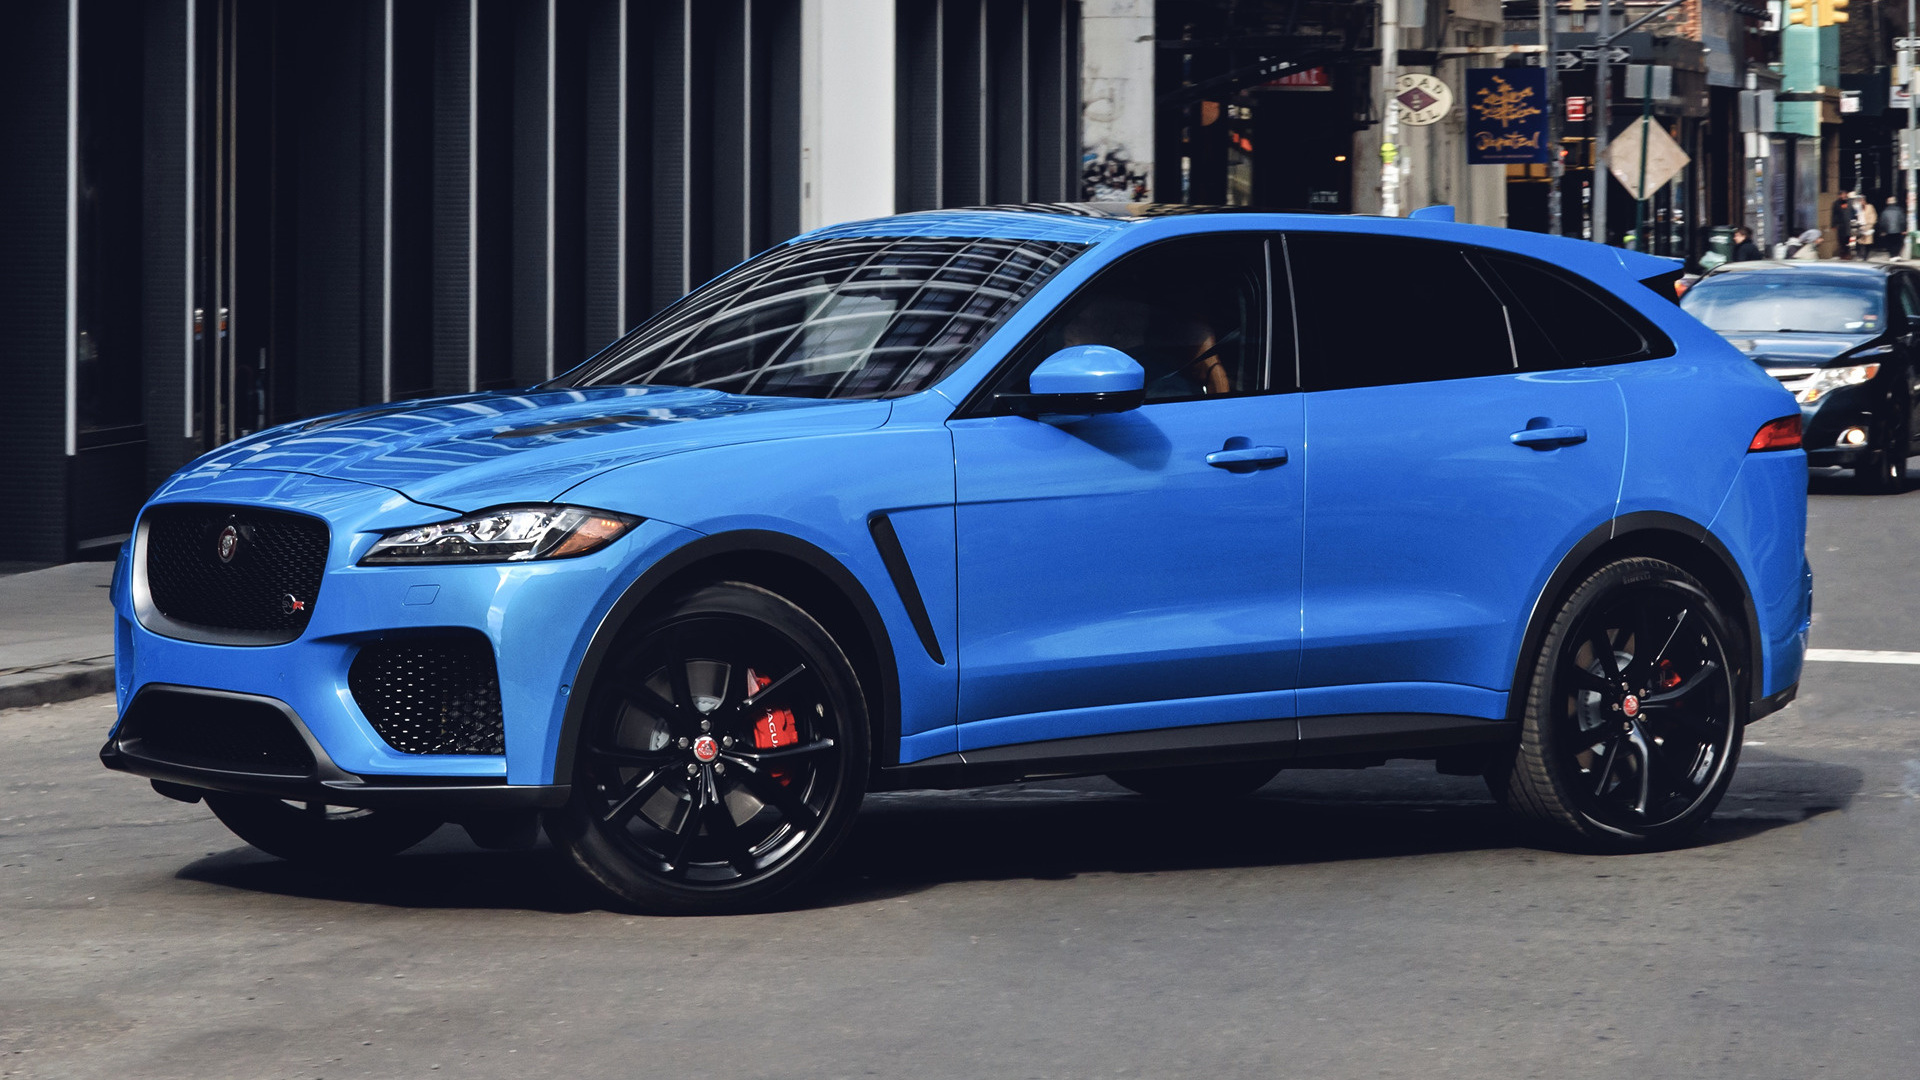 2019 Jaguar F-Pace SVR (US) - Wallpapers and HD Images ...